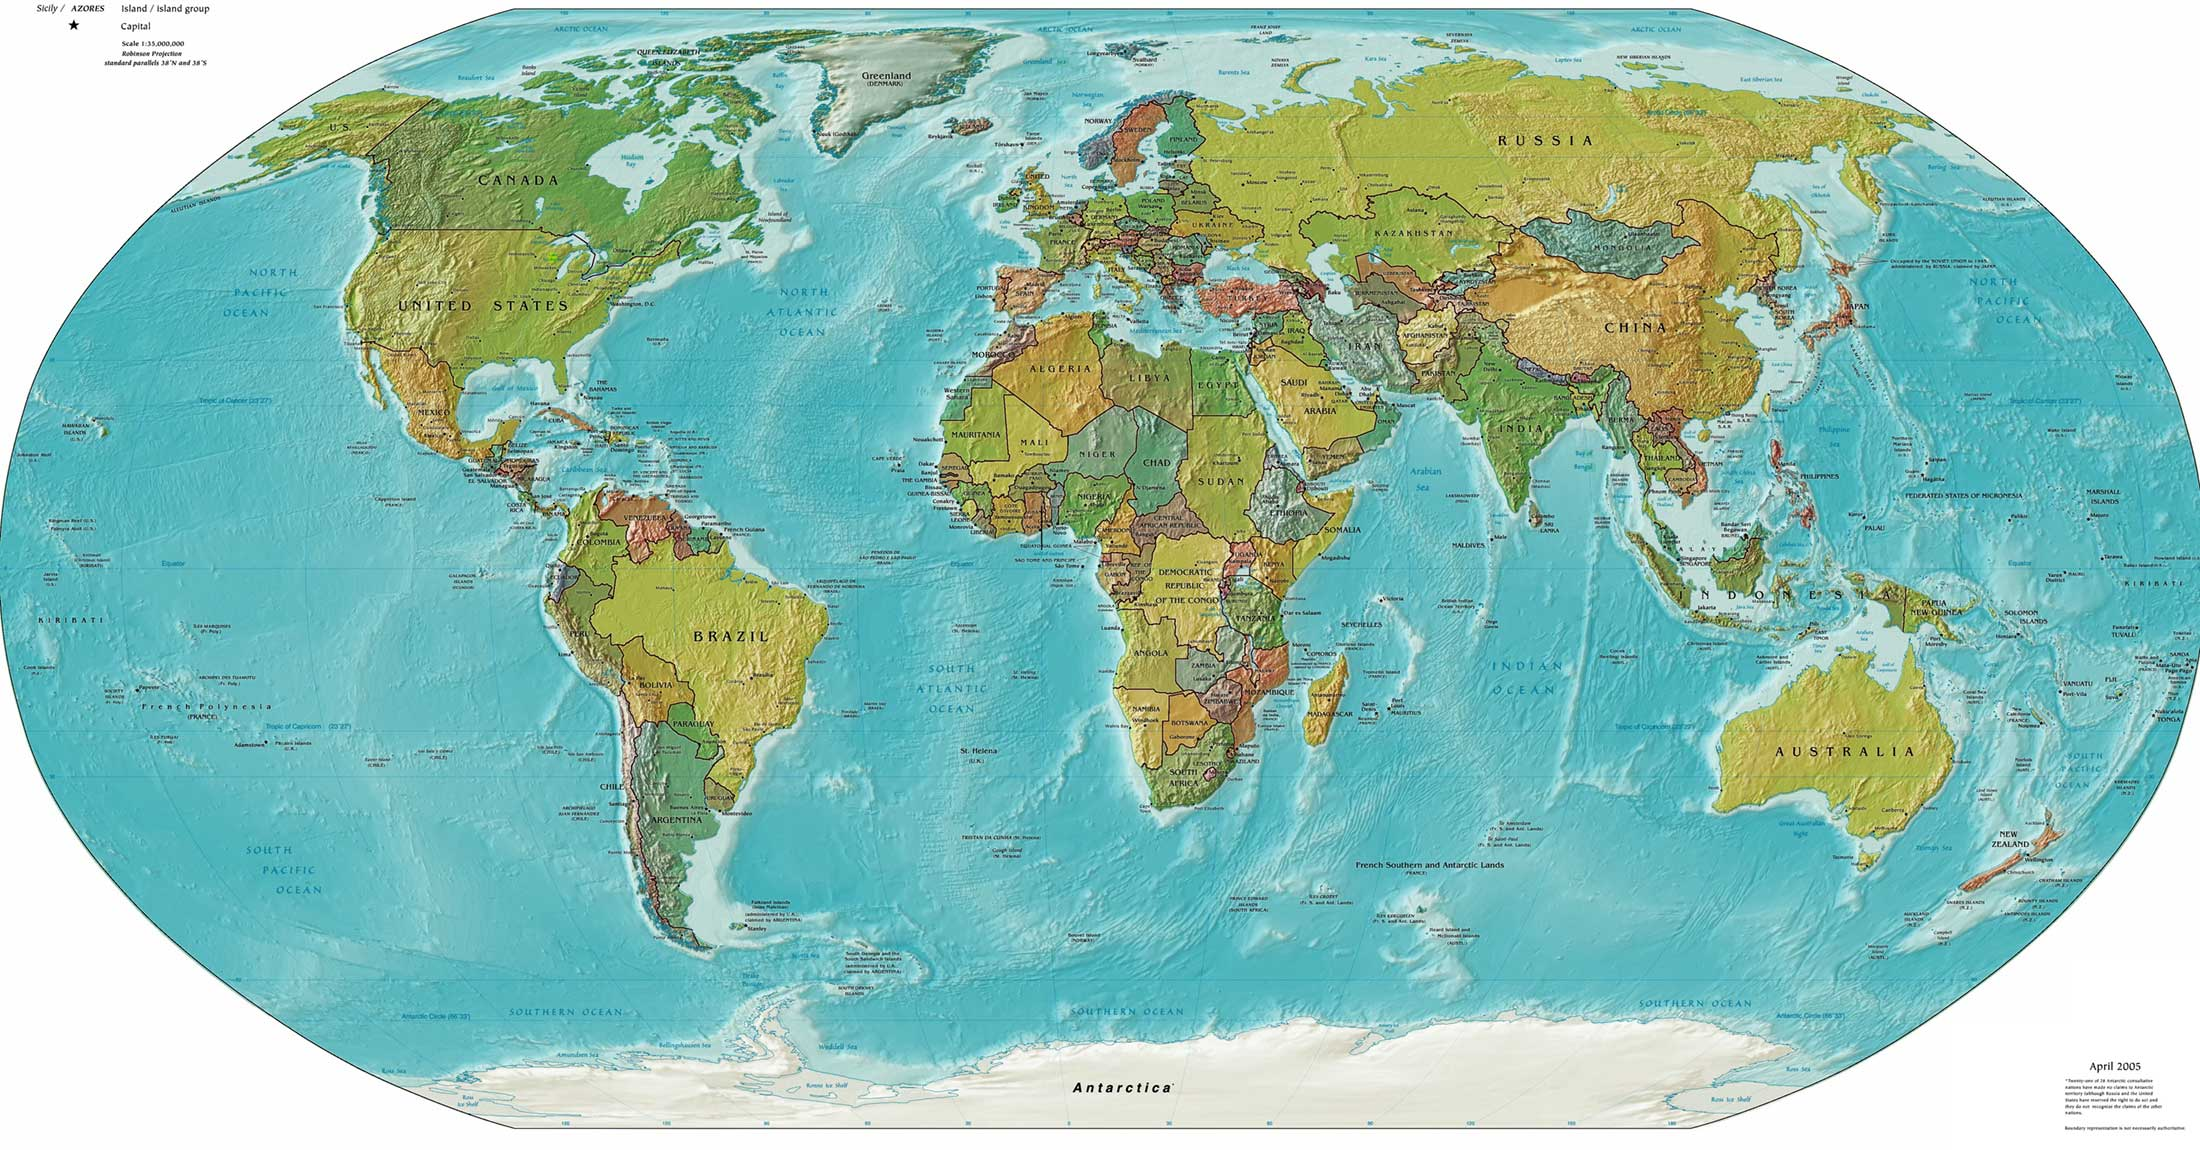 Colored, geographic map of the world.